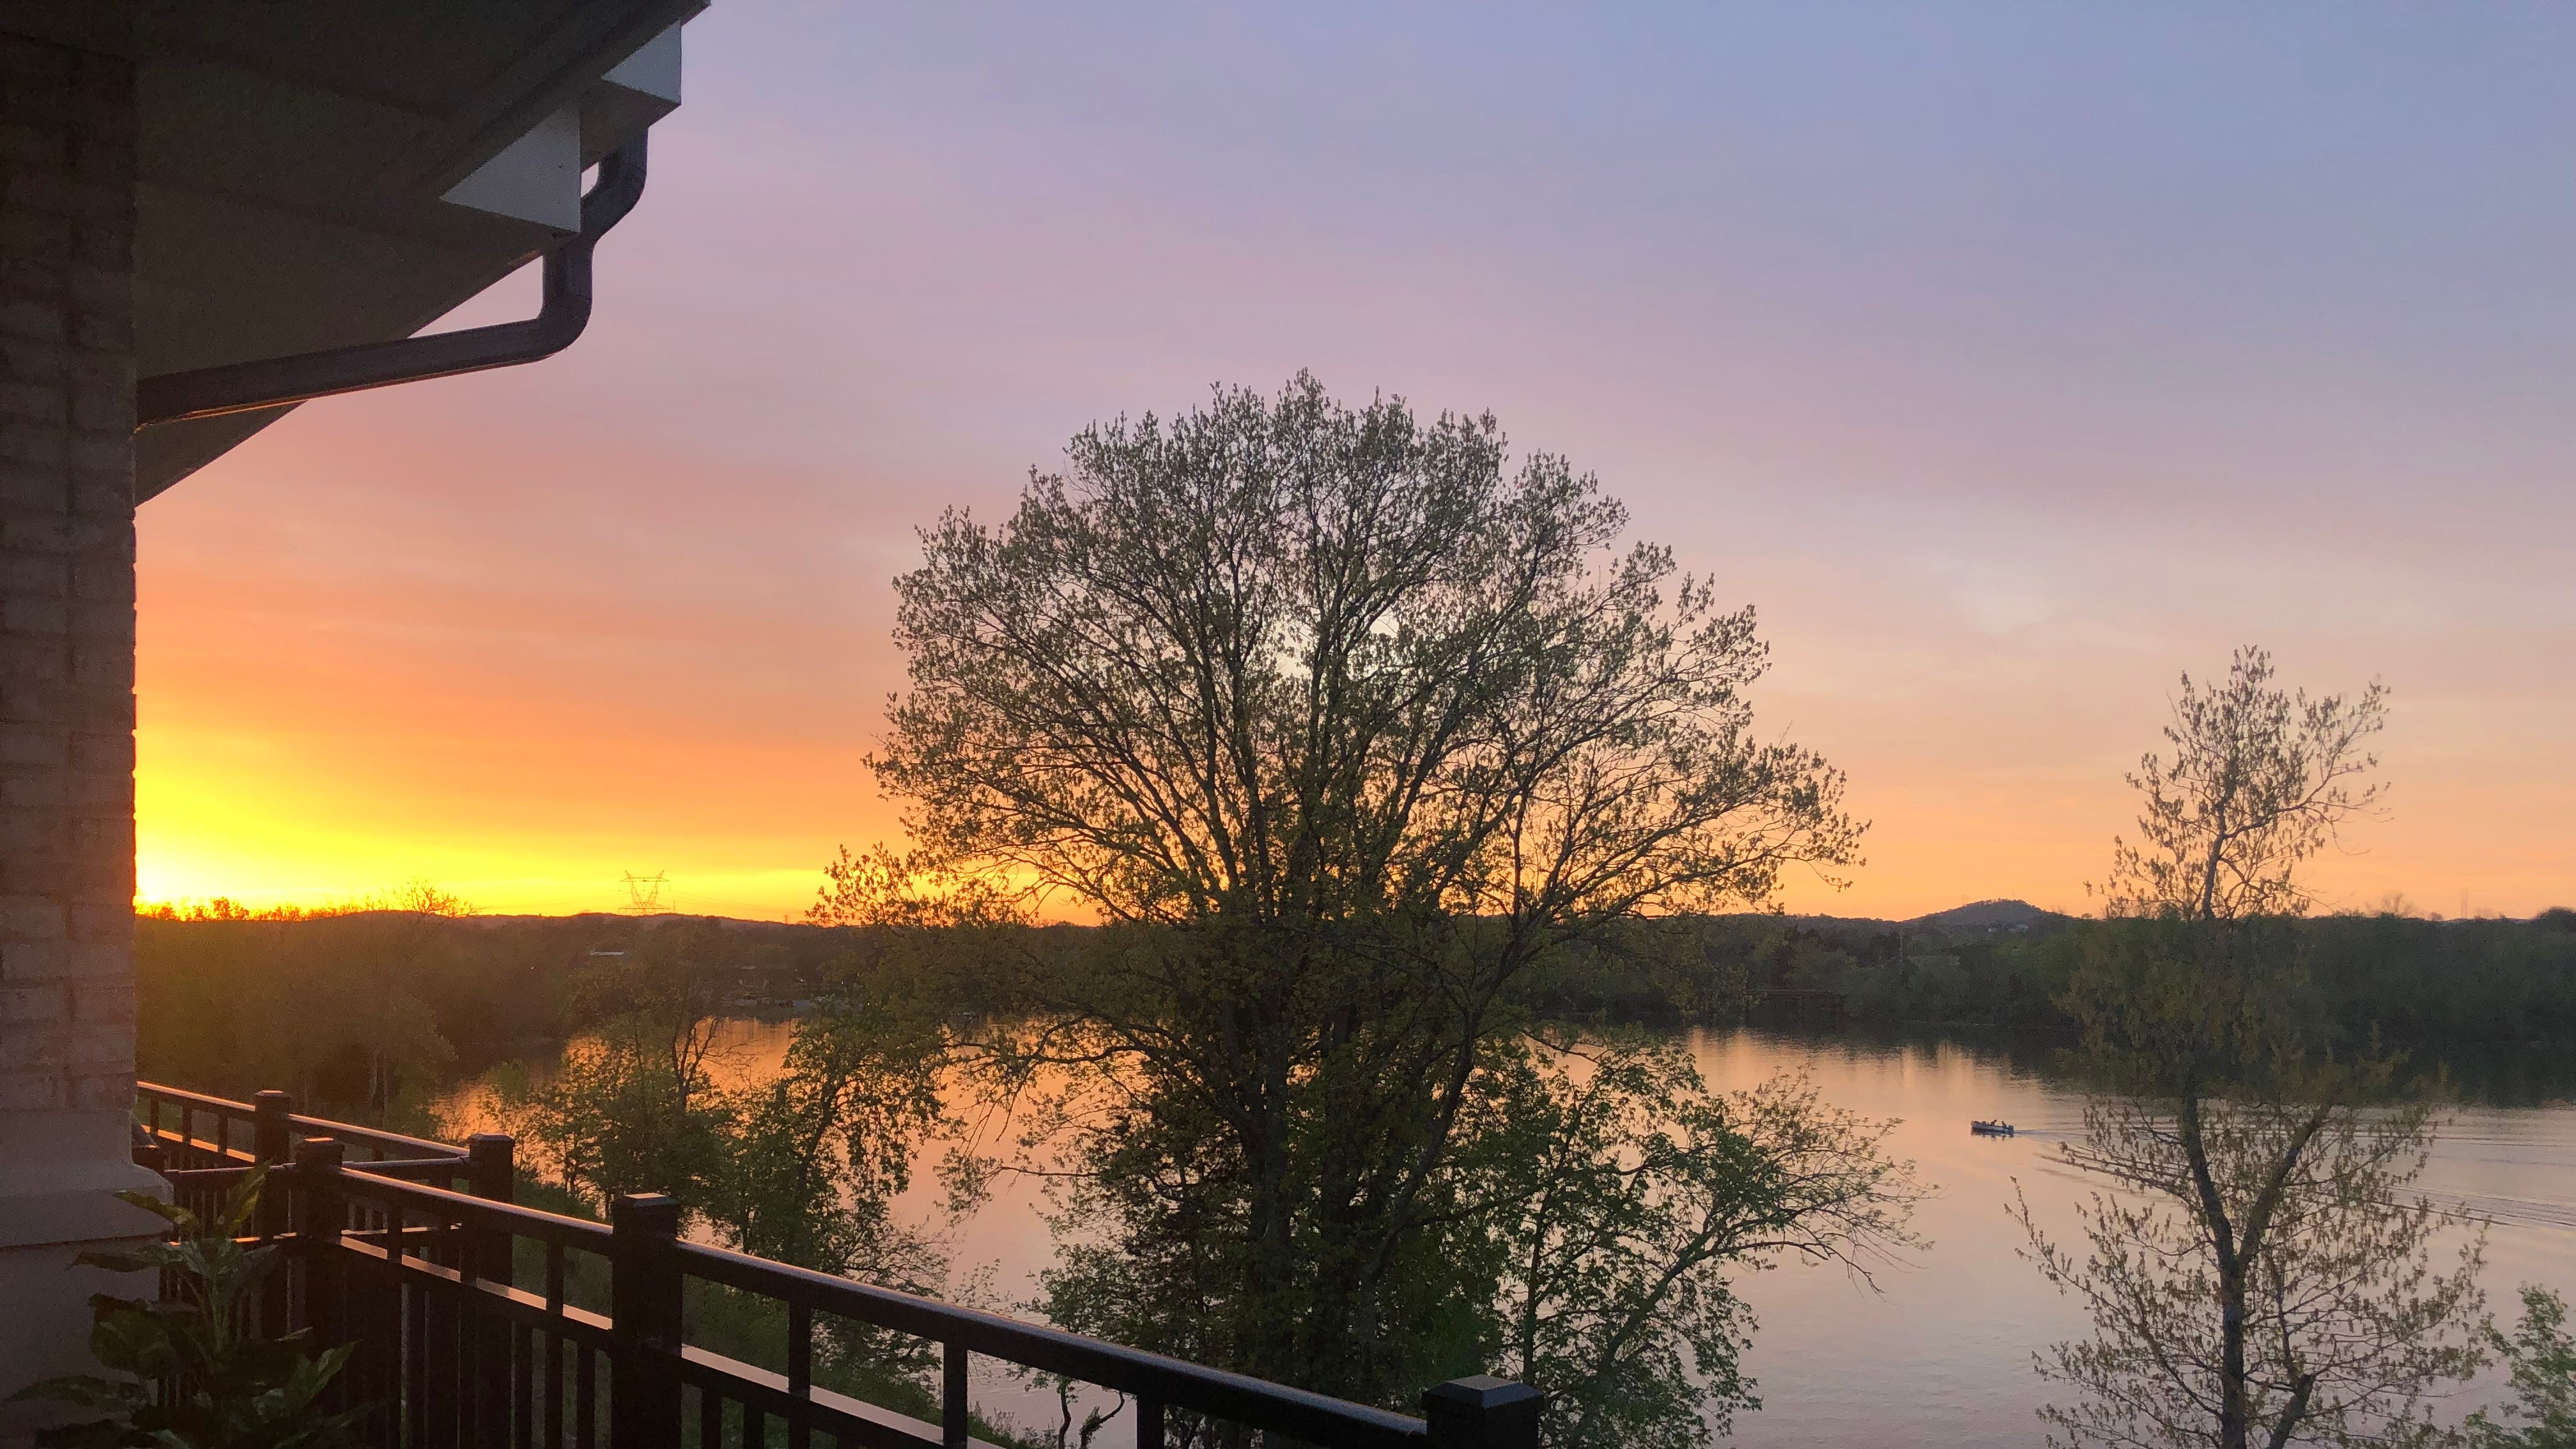 Sunset at Revery Point, the new luxury condos on Old Hickory Lake, located 25 minutes outside of Nashville in the Foxland Harbor country club community.